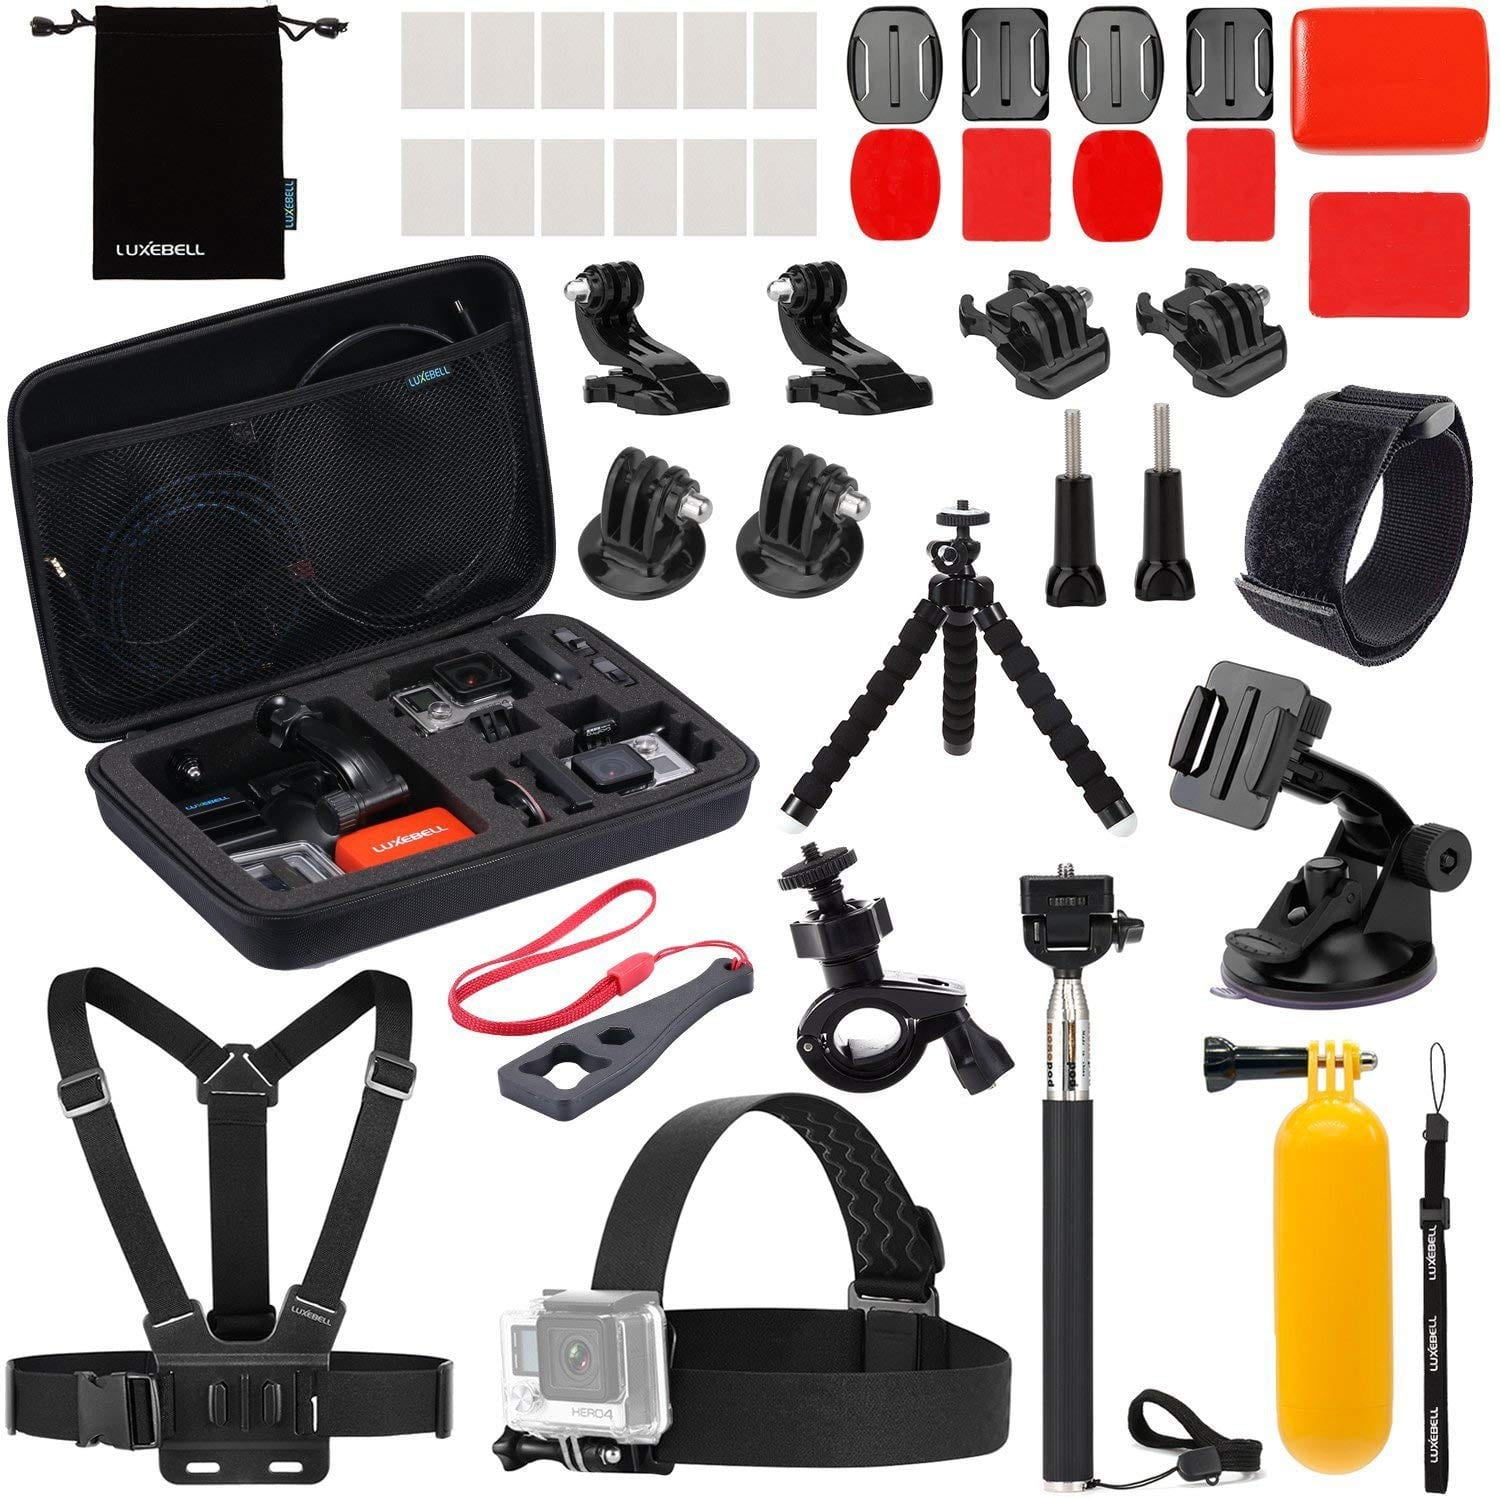 Luxebell accessory Kit for Akaso EK5000 EK7000 GoPro Hero 7-6-5.